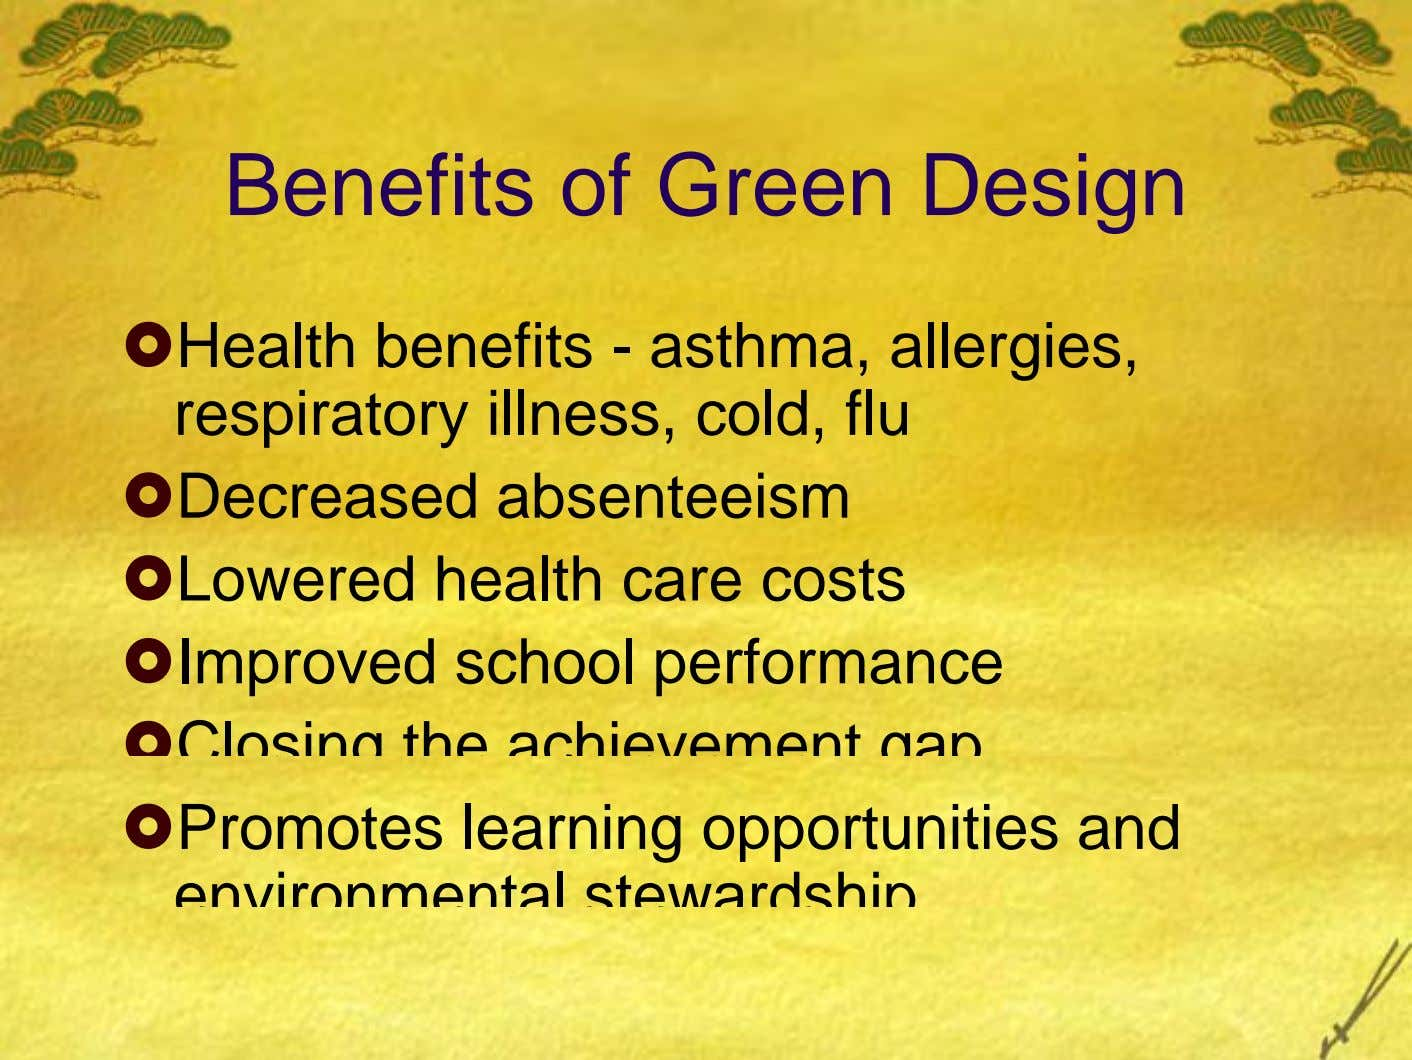 Benefits of Green Design Health benefits - asthma, allergies, respiratory illness, cold, flu Decreased absenteeism Lowered